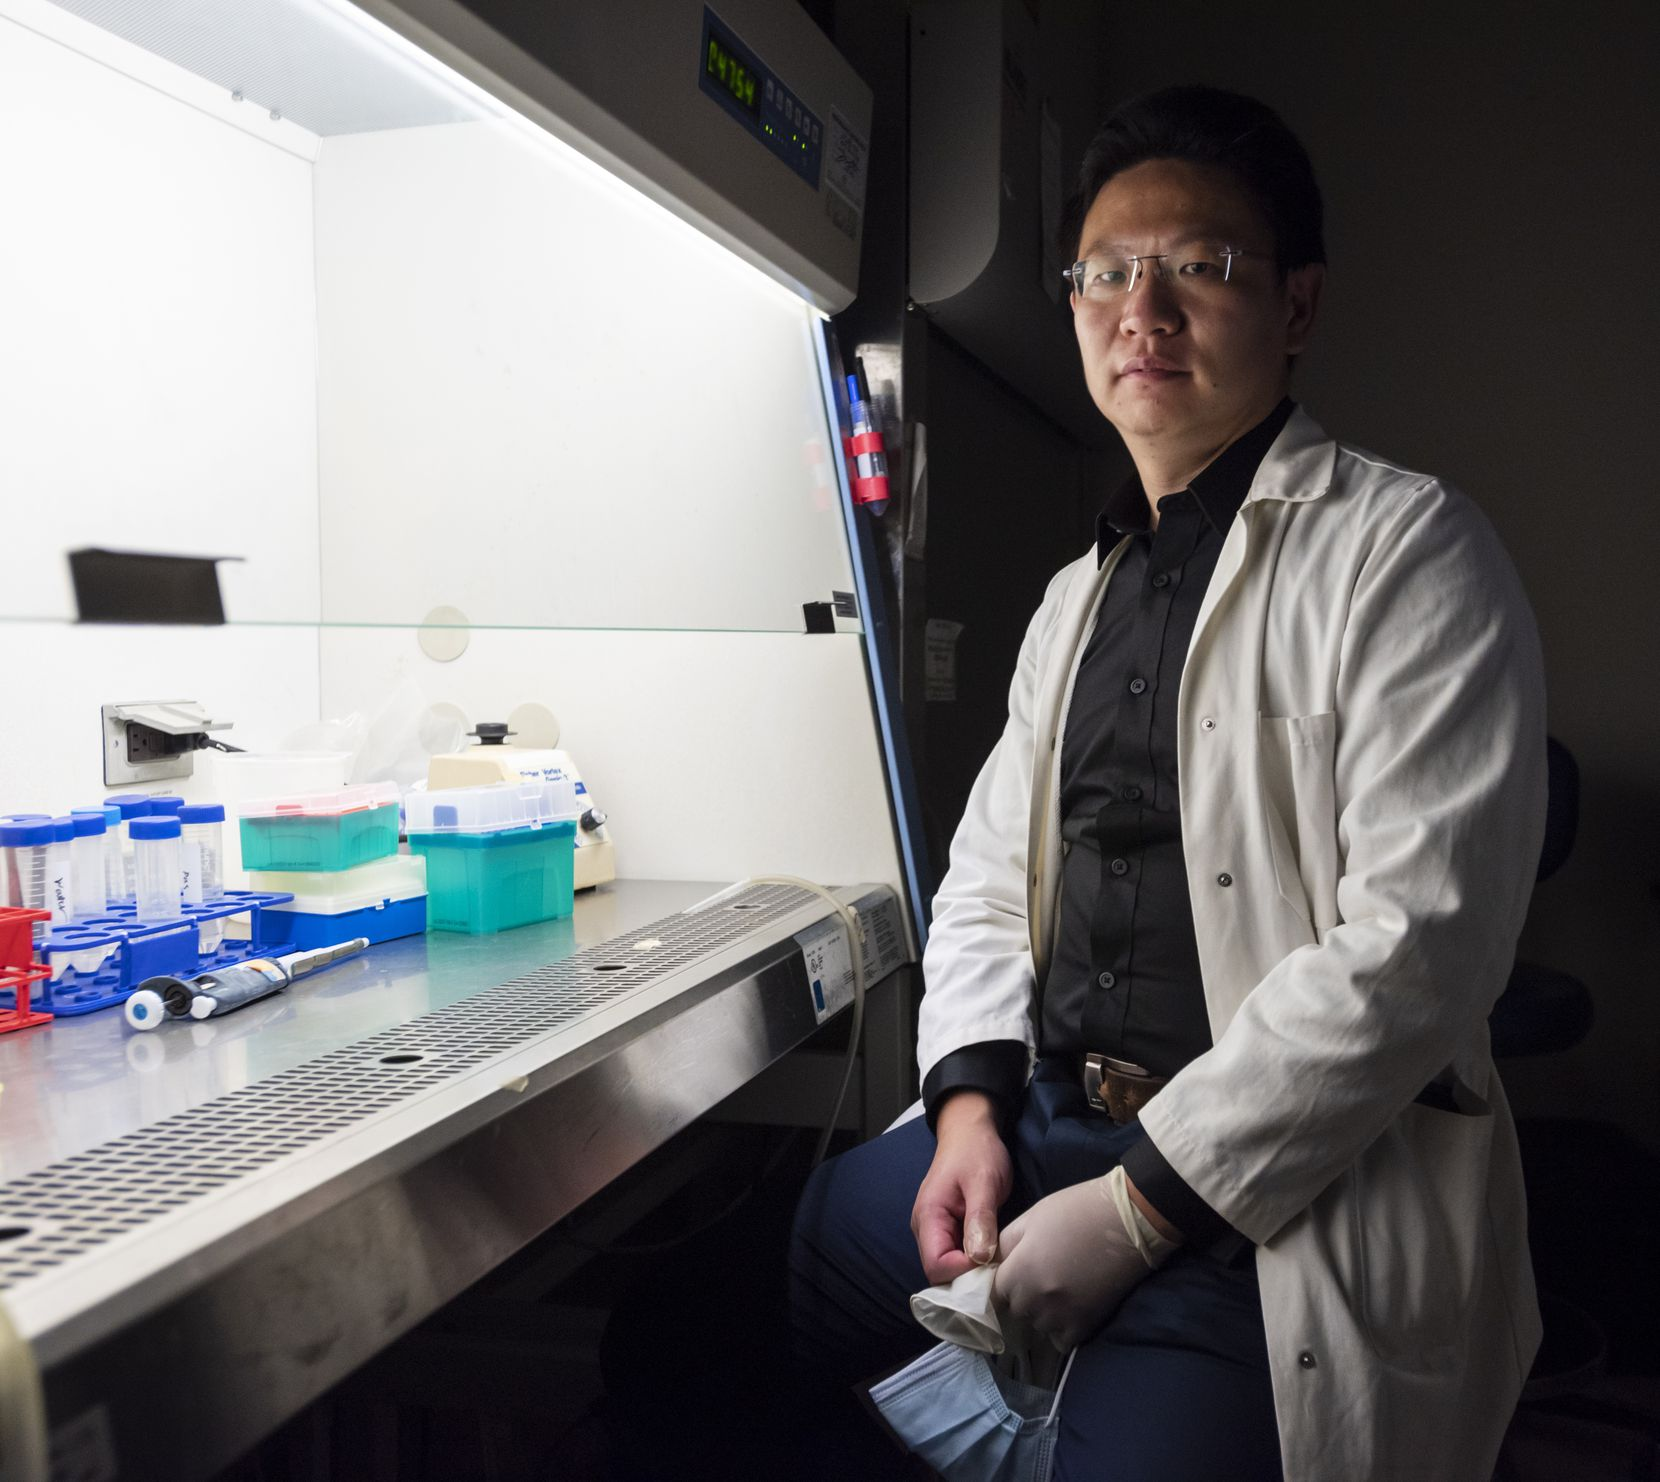 Dr. Zhihao Wu of Southern Methodist University sits next to a biosafety cabinet inside a campus lab.